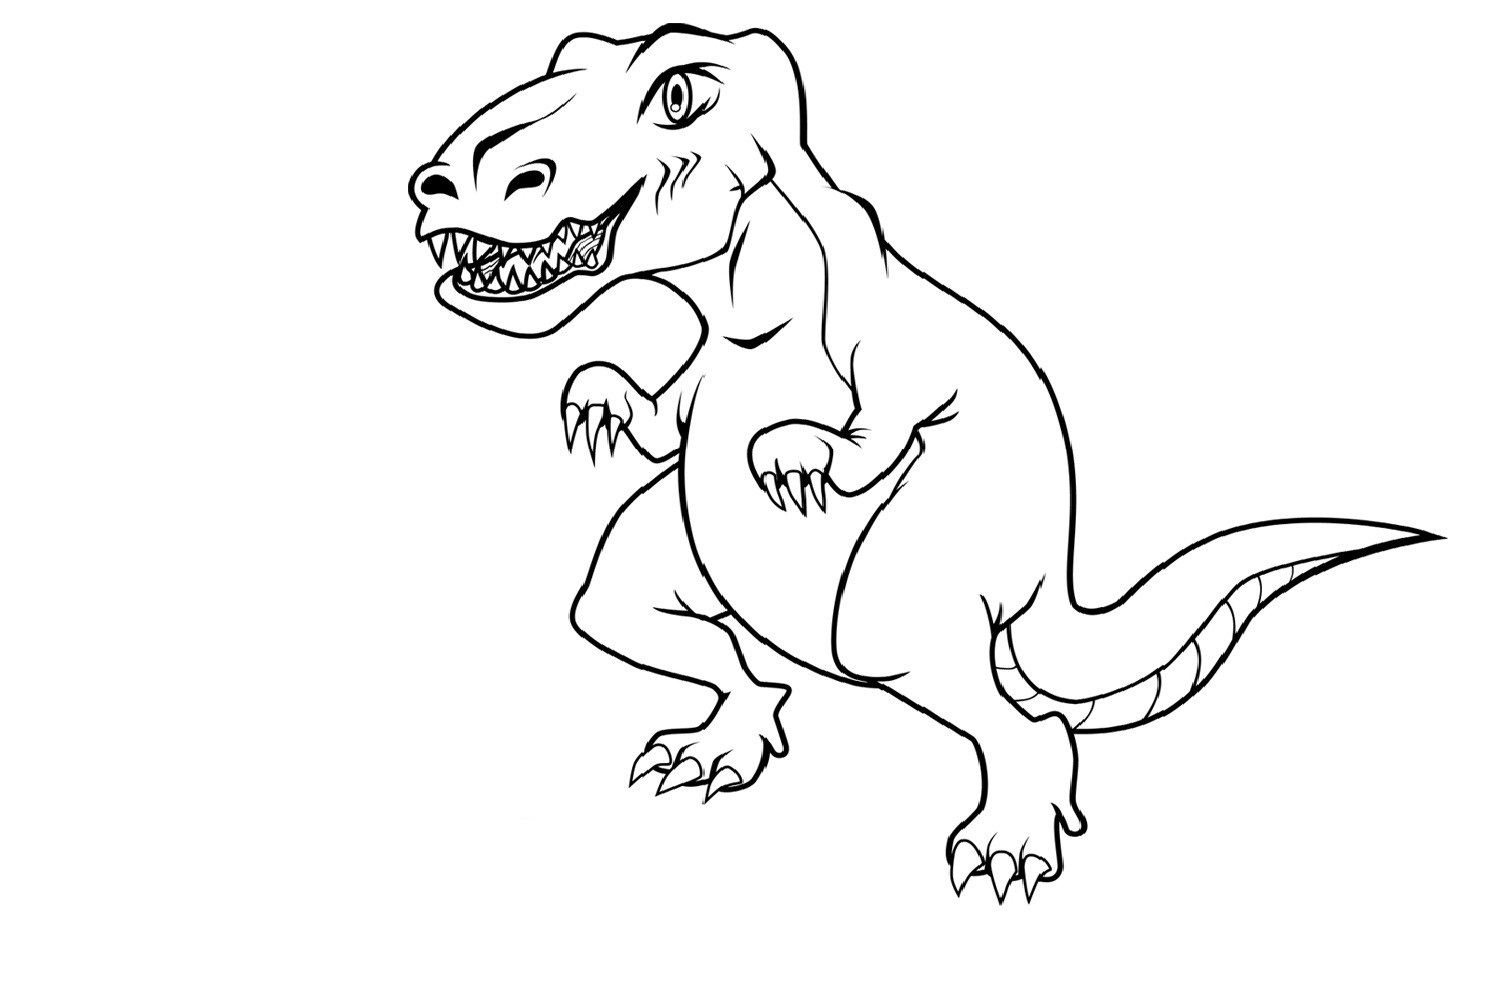 kids coloring pages dinosaurs - photo#27